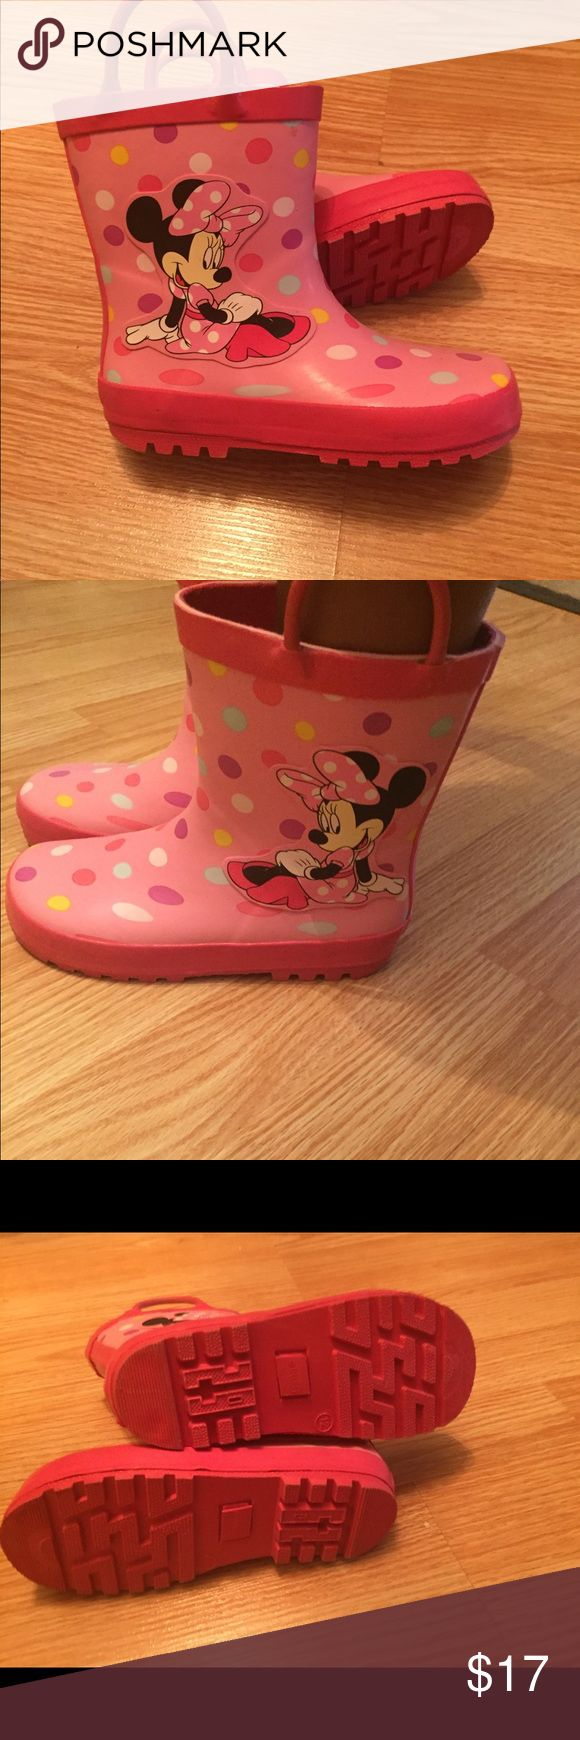 🔔 2 Day Sale 🎈Disney Minnie Mouse Rain Boots NWOT . Only tried on. Small scuff at side of left boot ( in pics) Disney Shoes Rain & Snow Boots